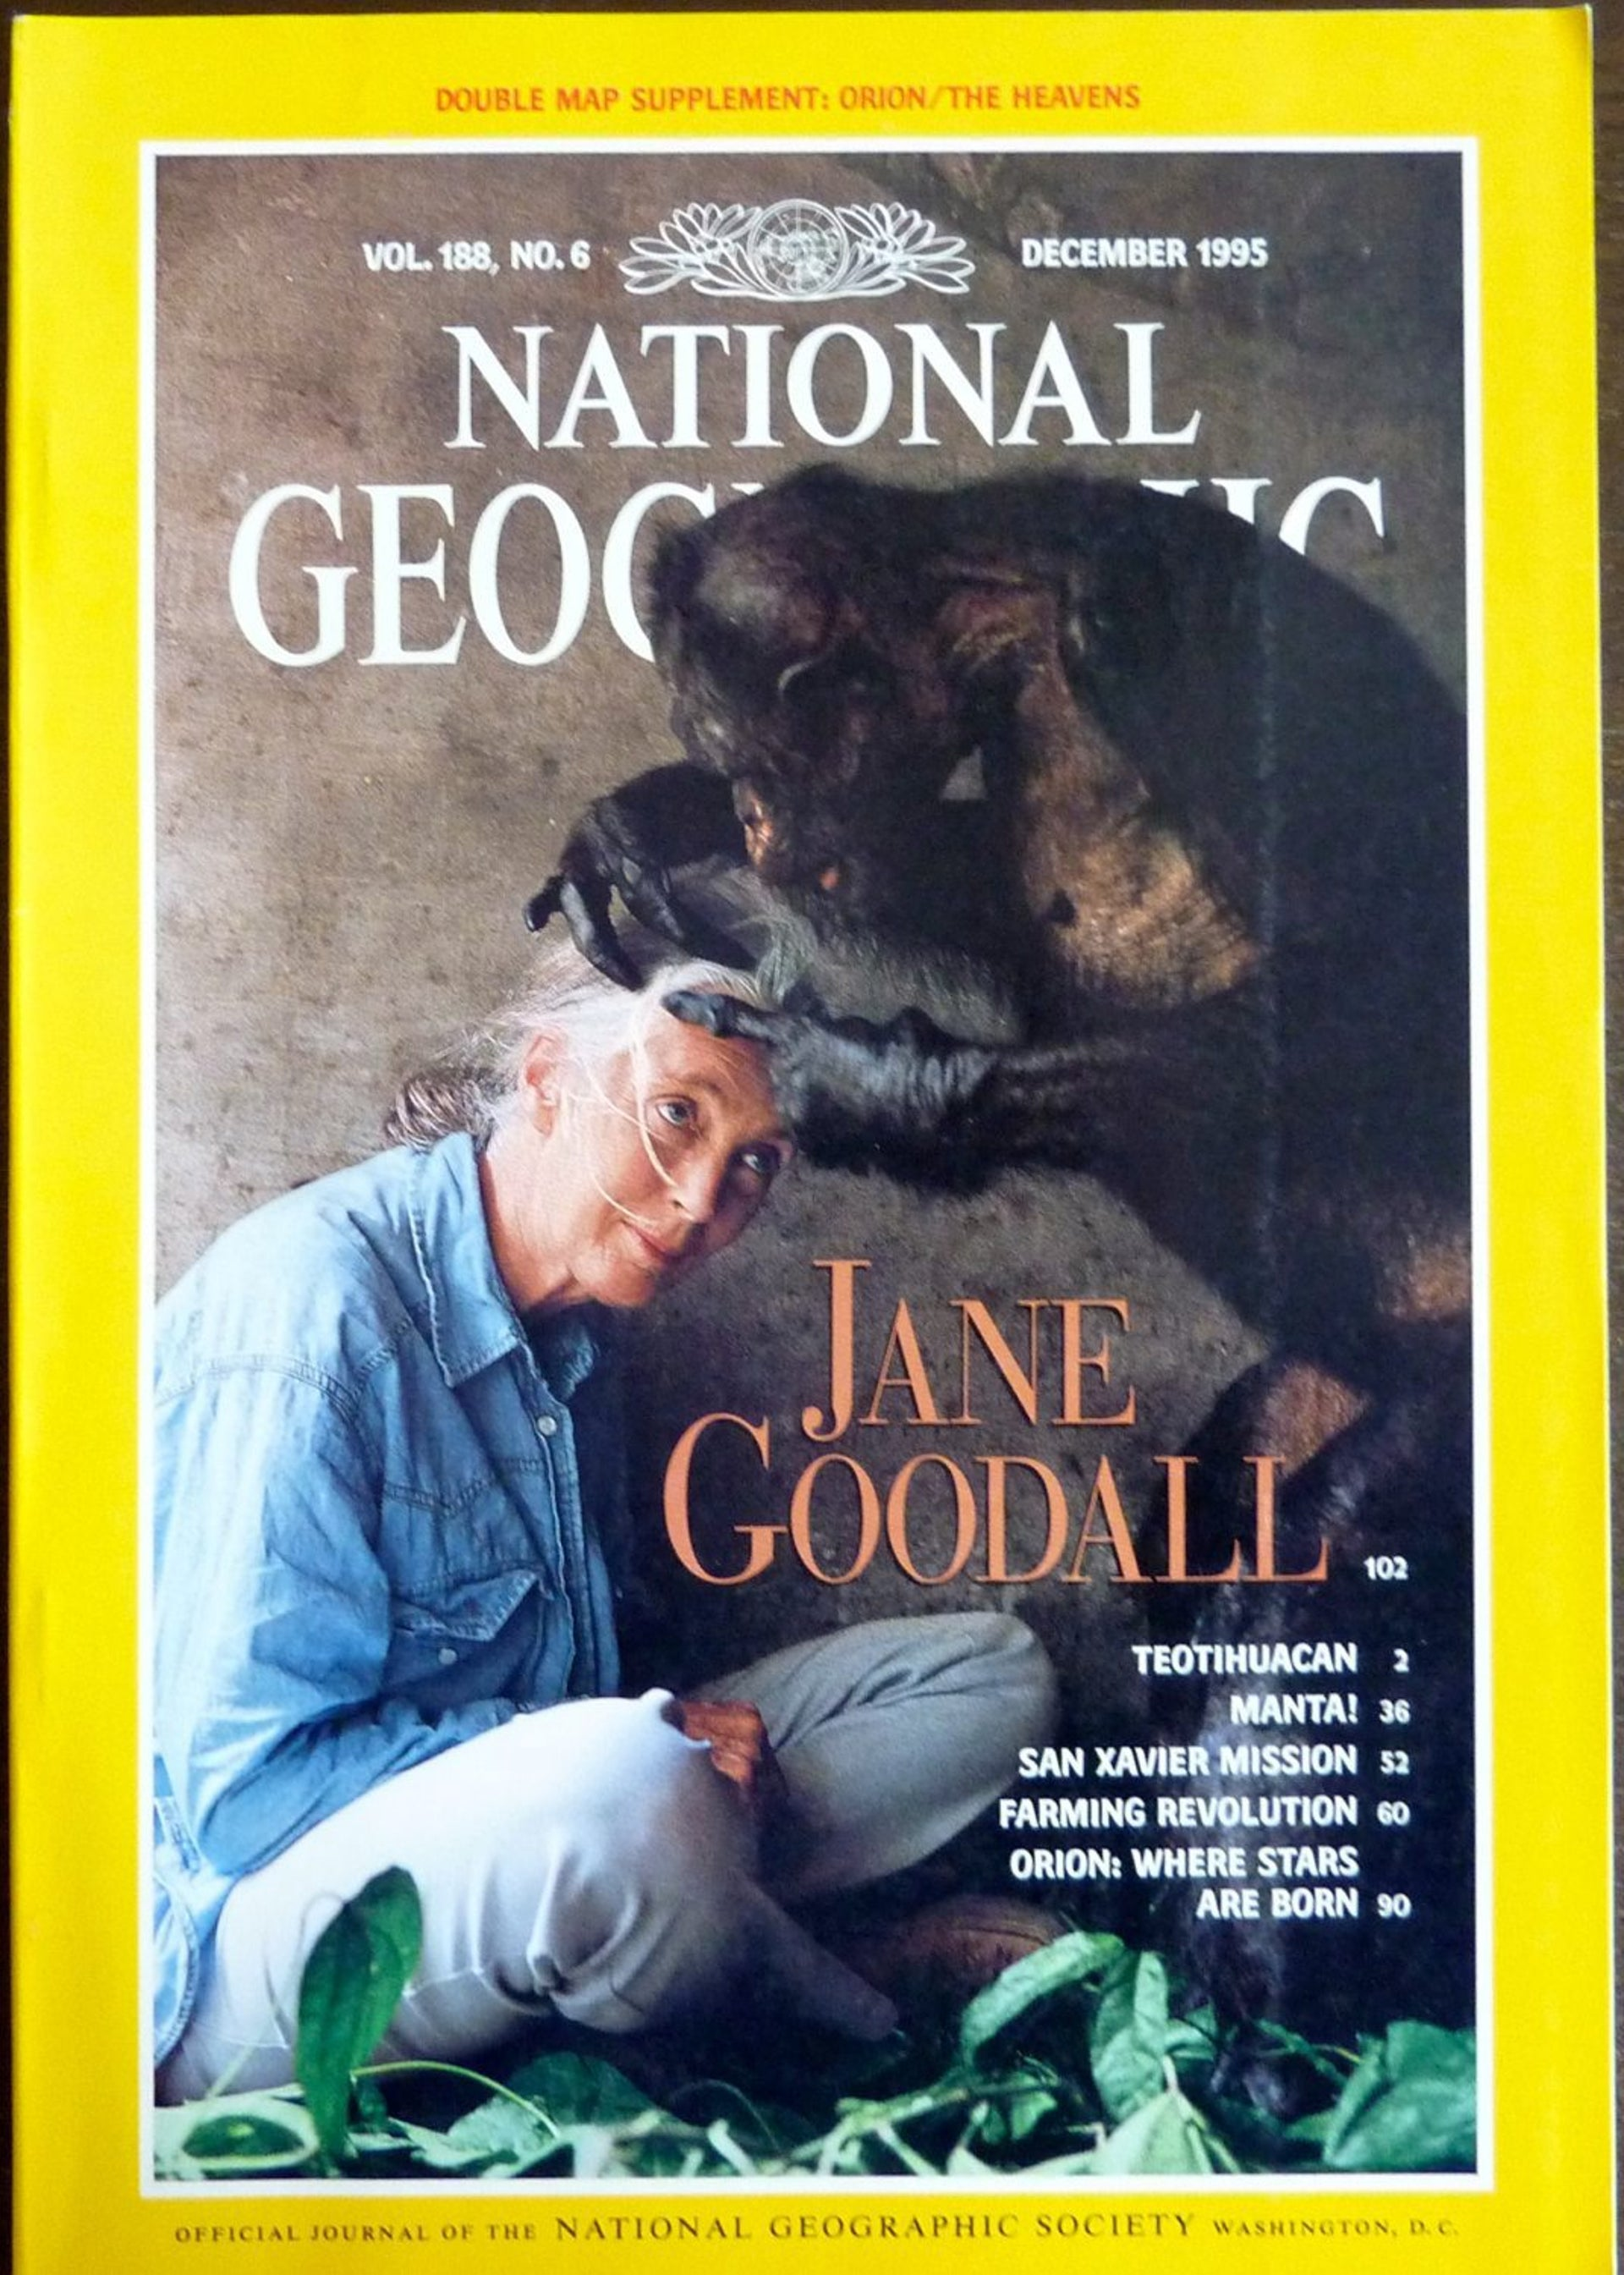 The cover of National Geographic in 1995.